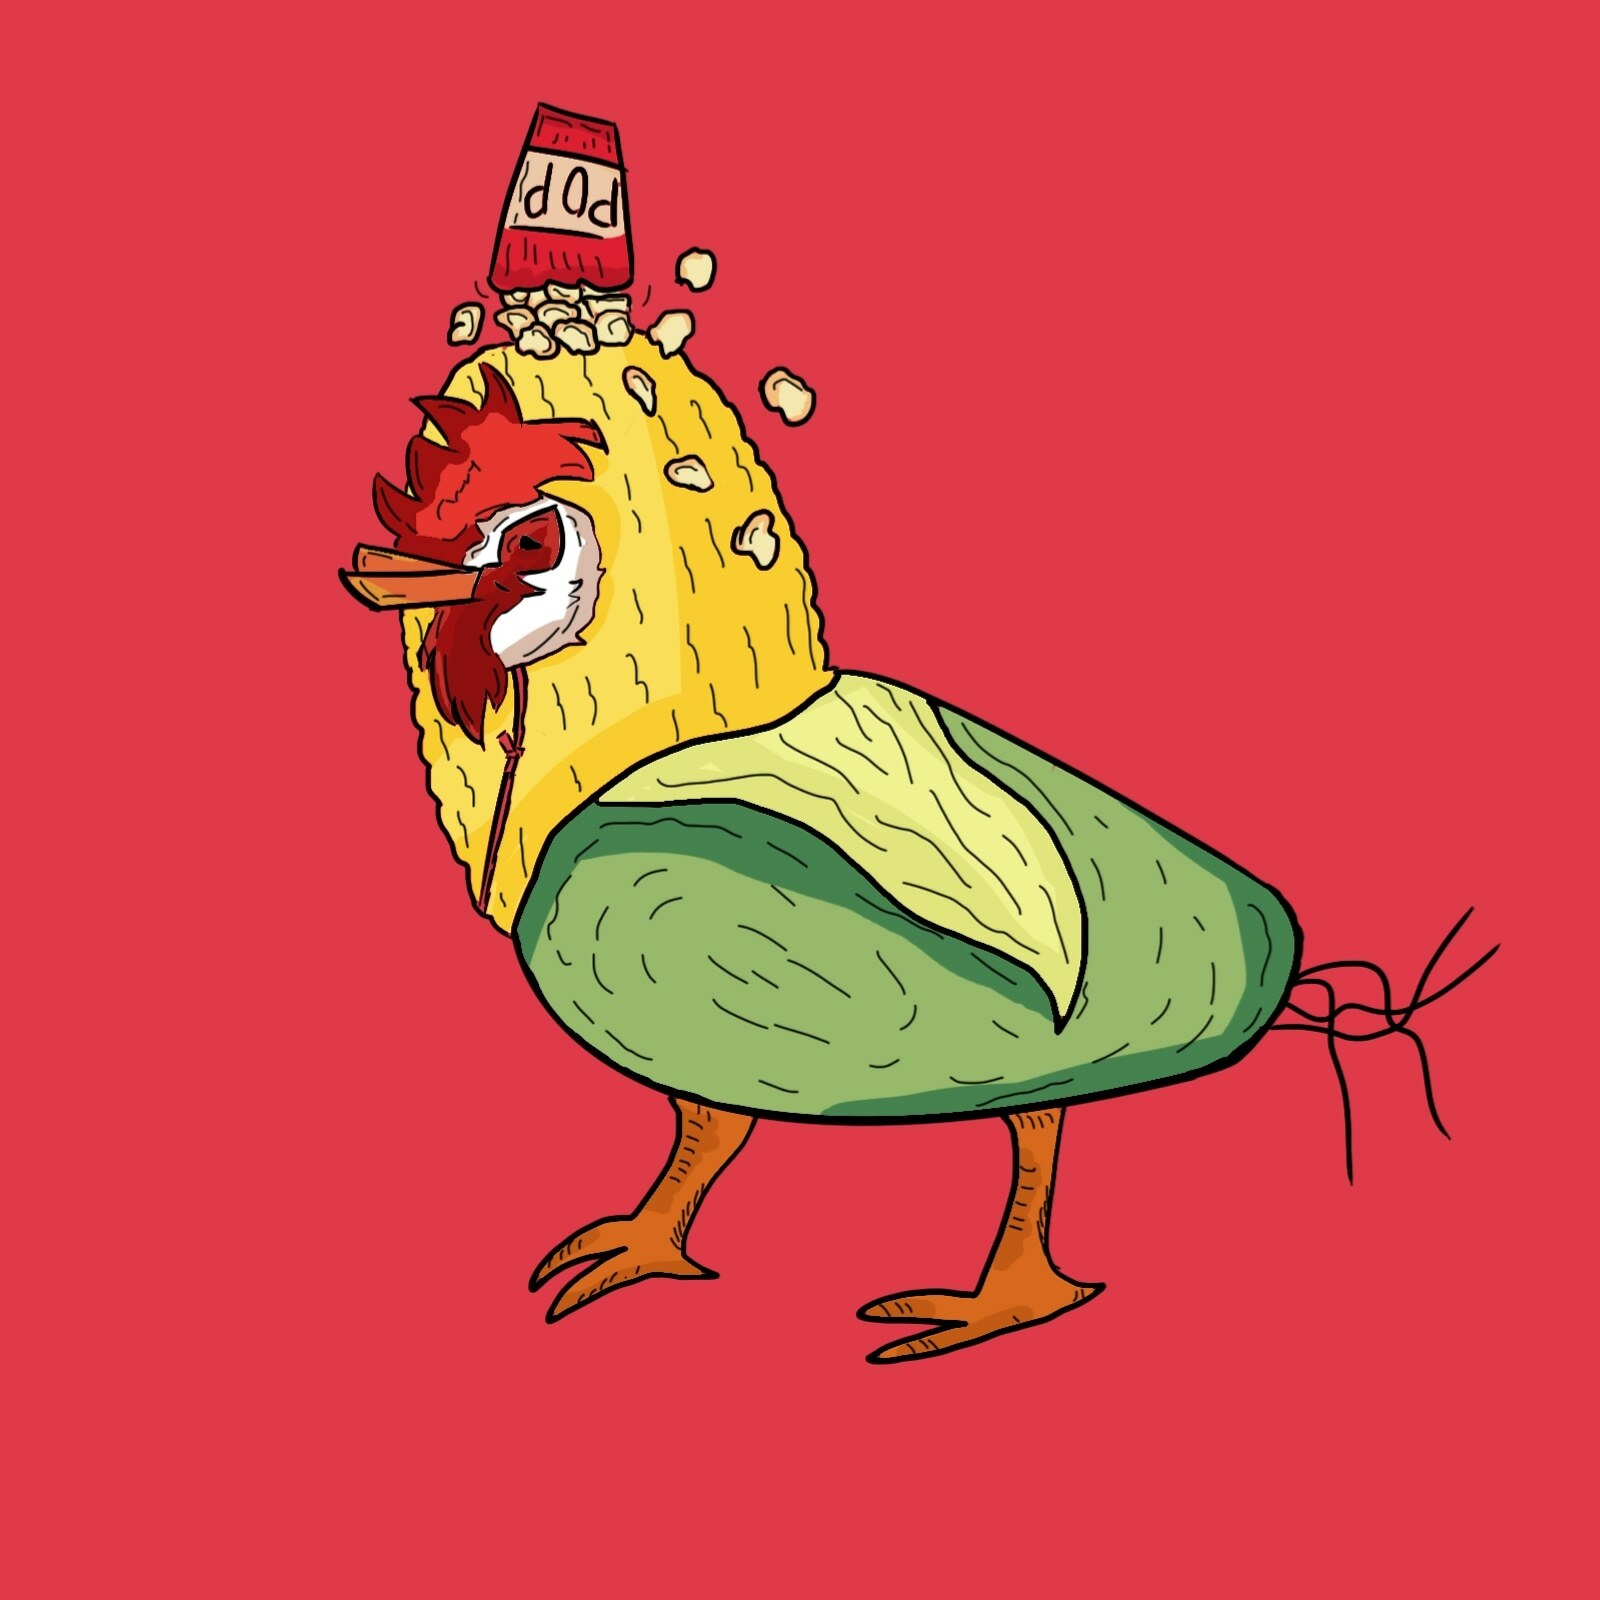 Chicken anddd corn costume i think that's it